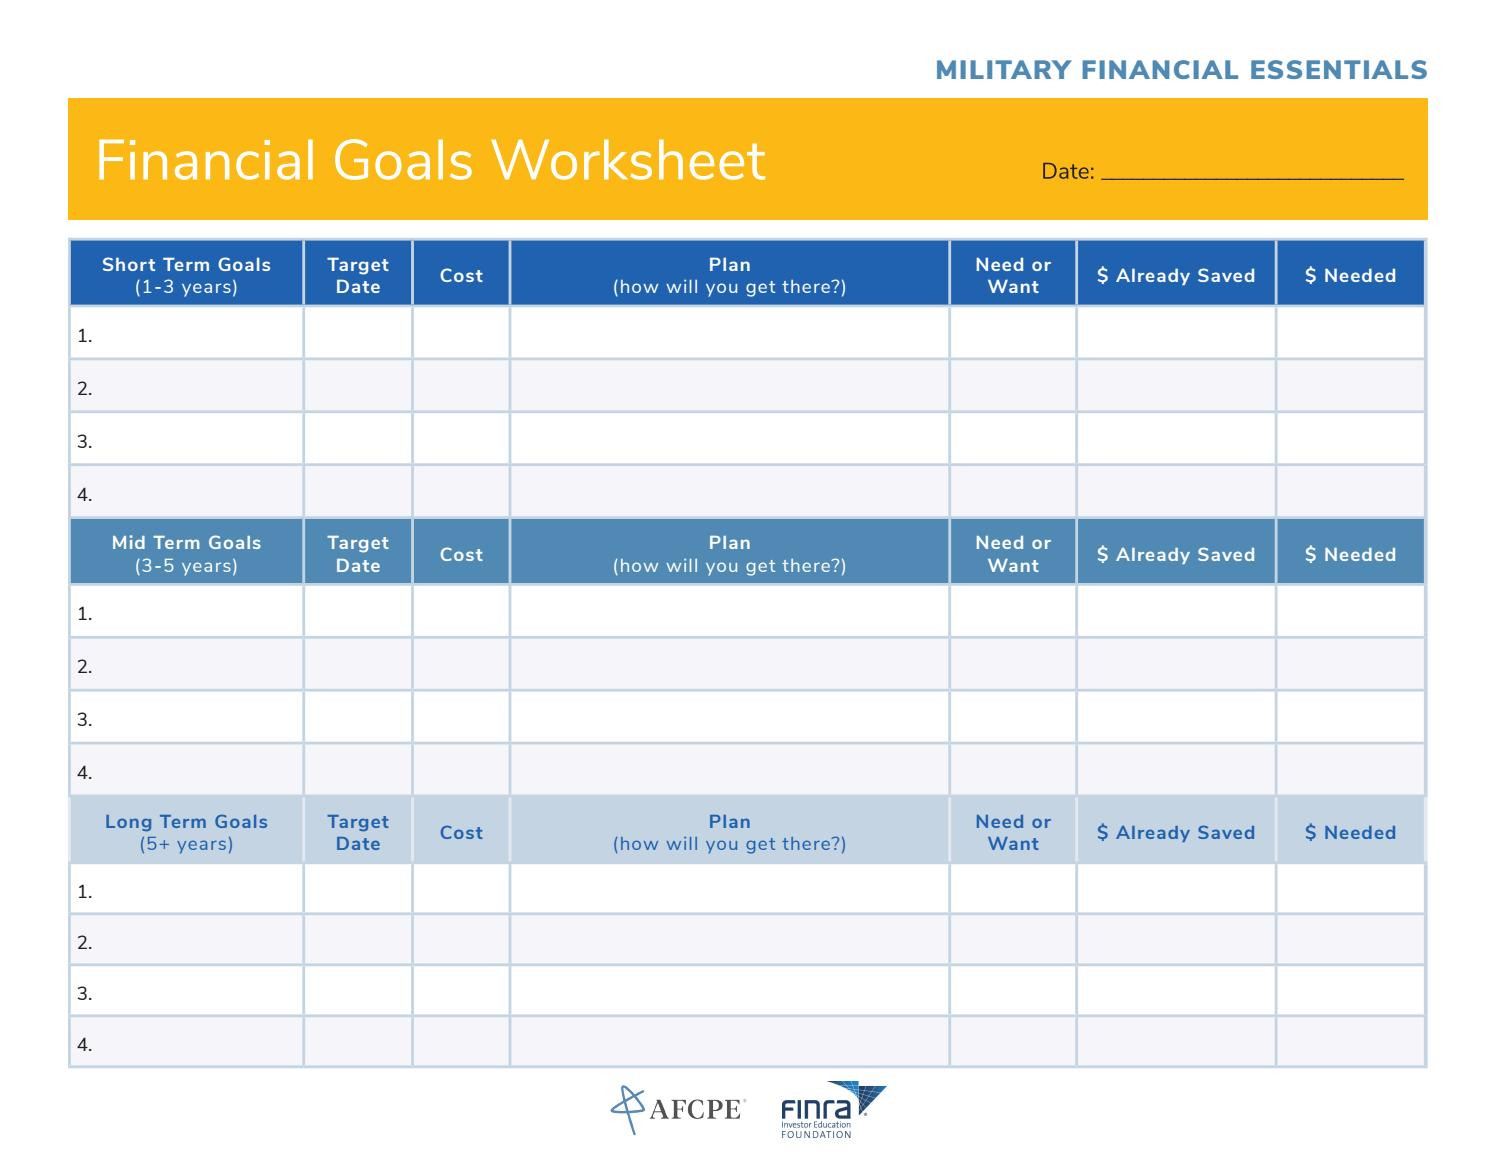 Financial Goals Worksheet